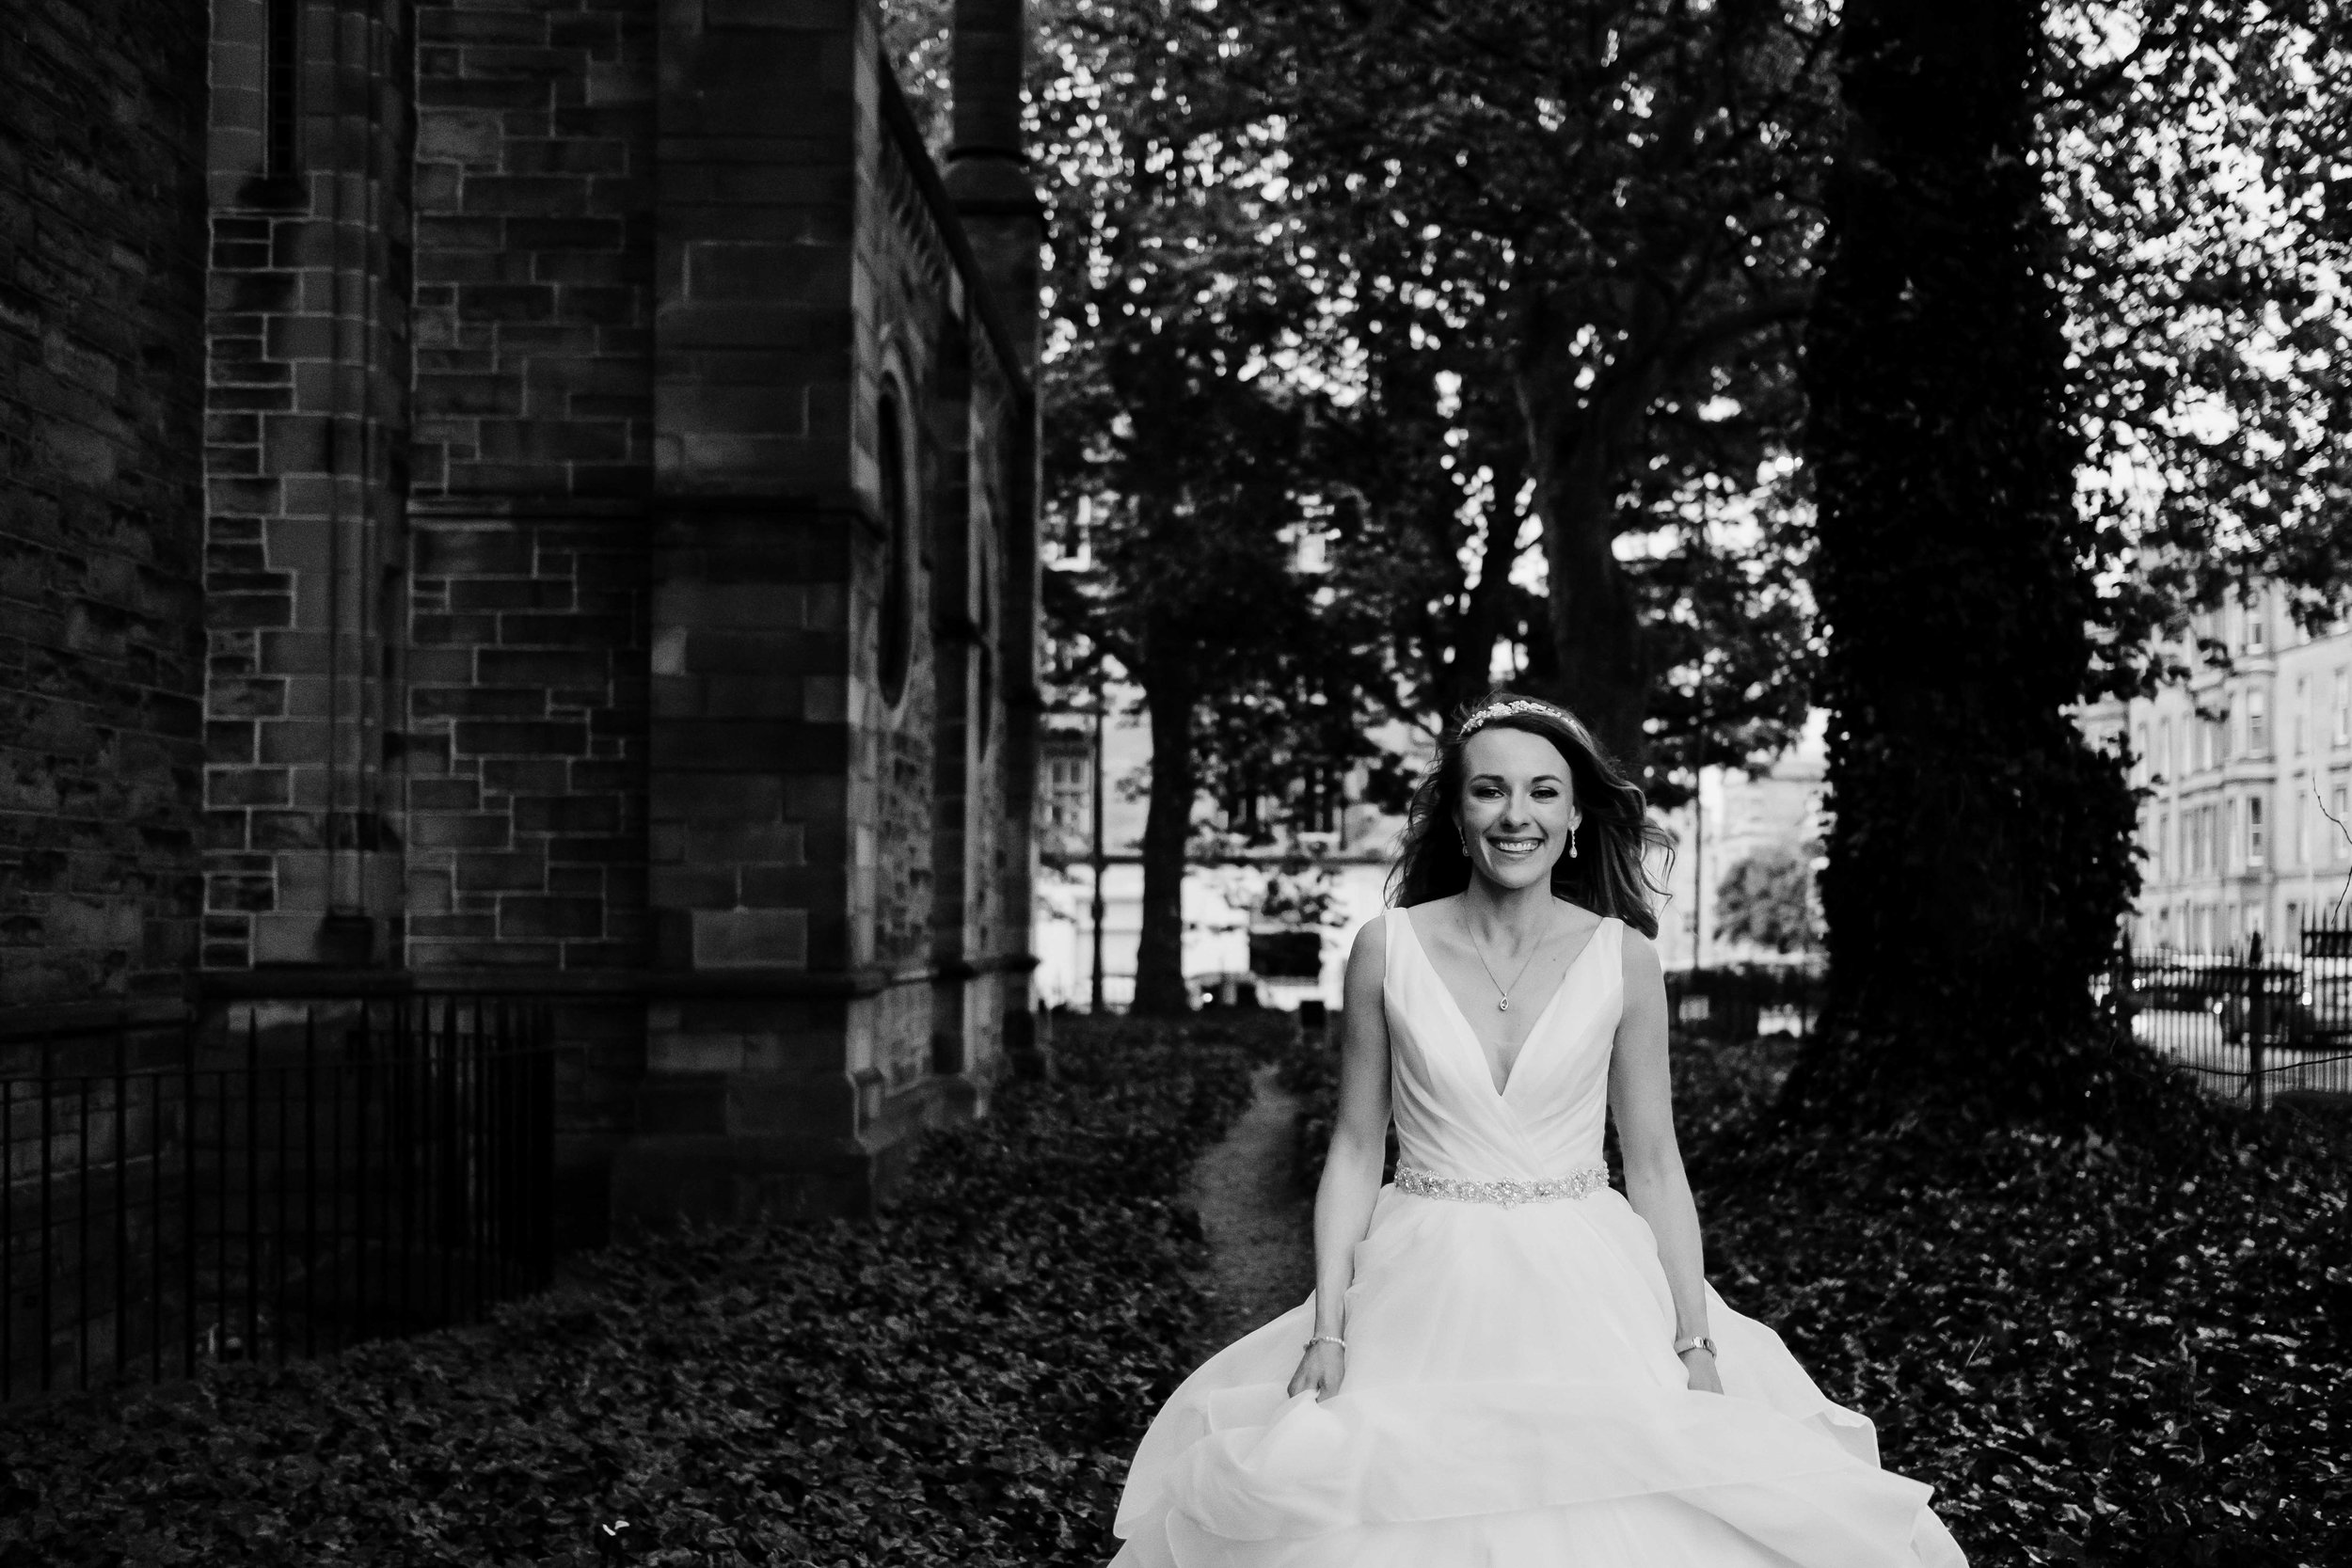 bride is walking towards the camera with a huge smile on her face